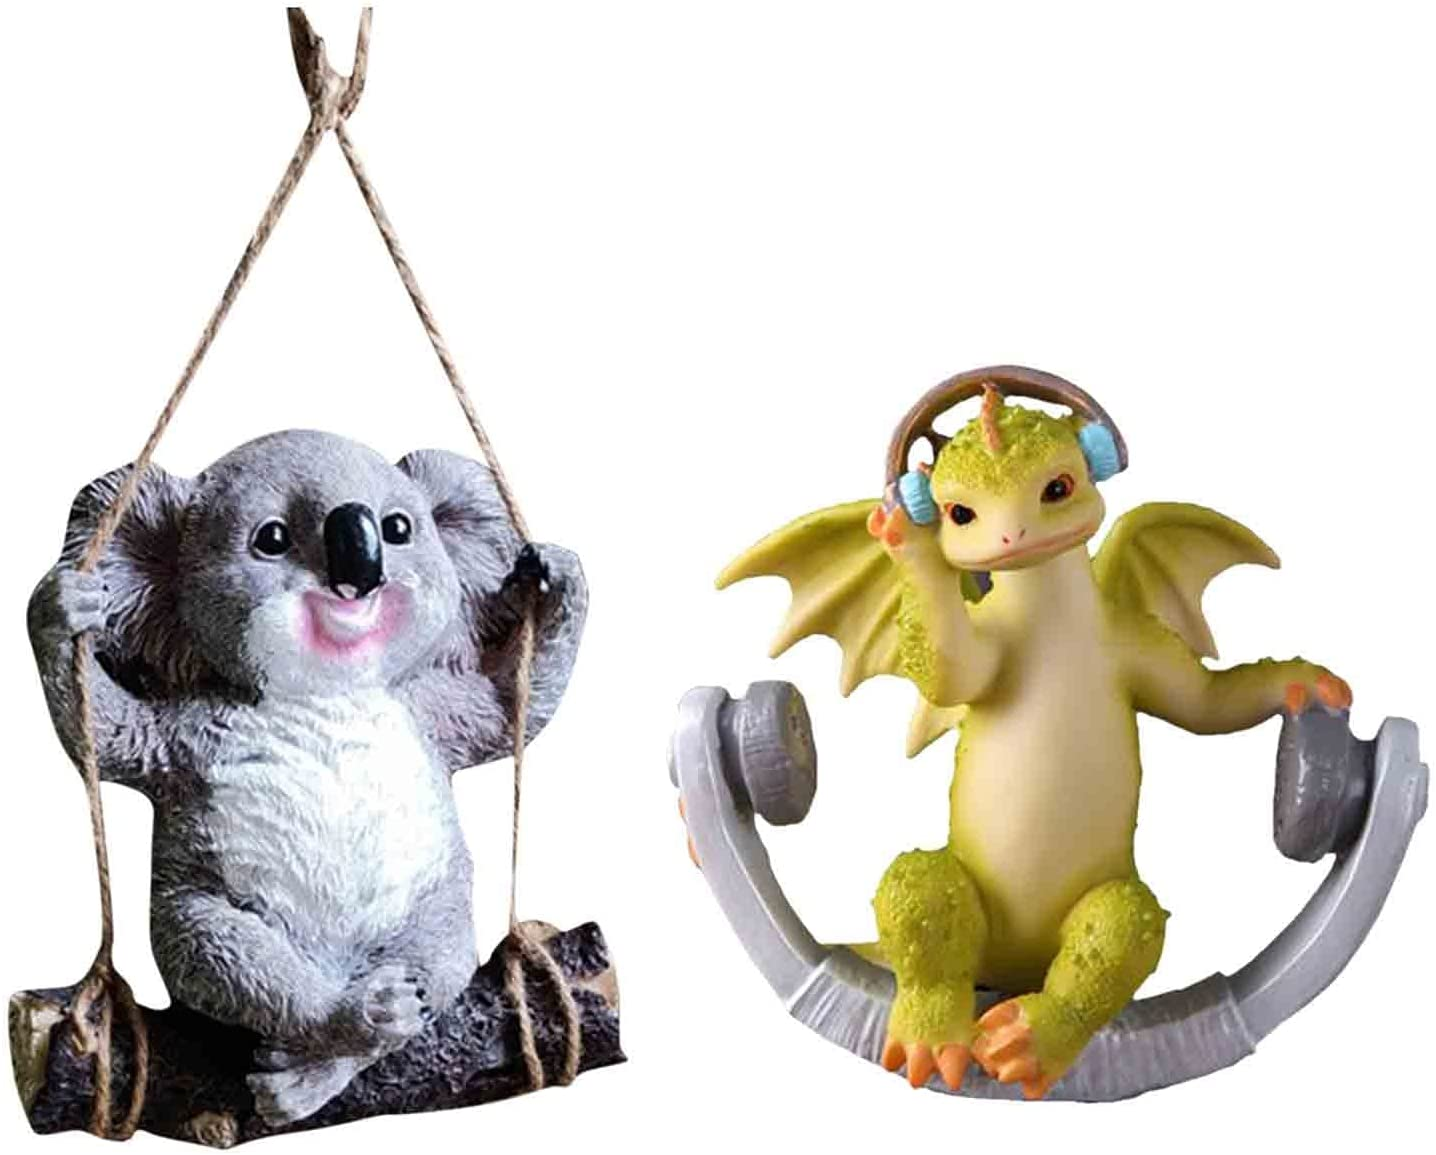 Swing Cheap bargain Simulation Animal Resin Outdoor Stat Garden Clearance SALE Limited time Statue